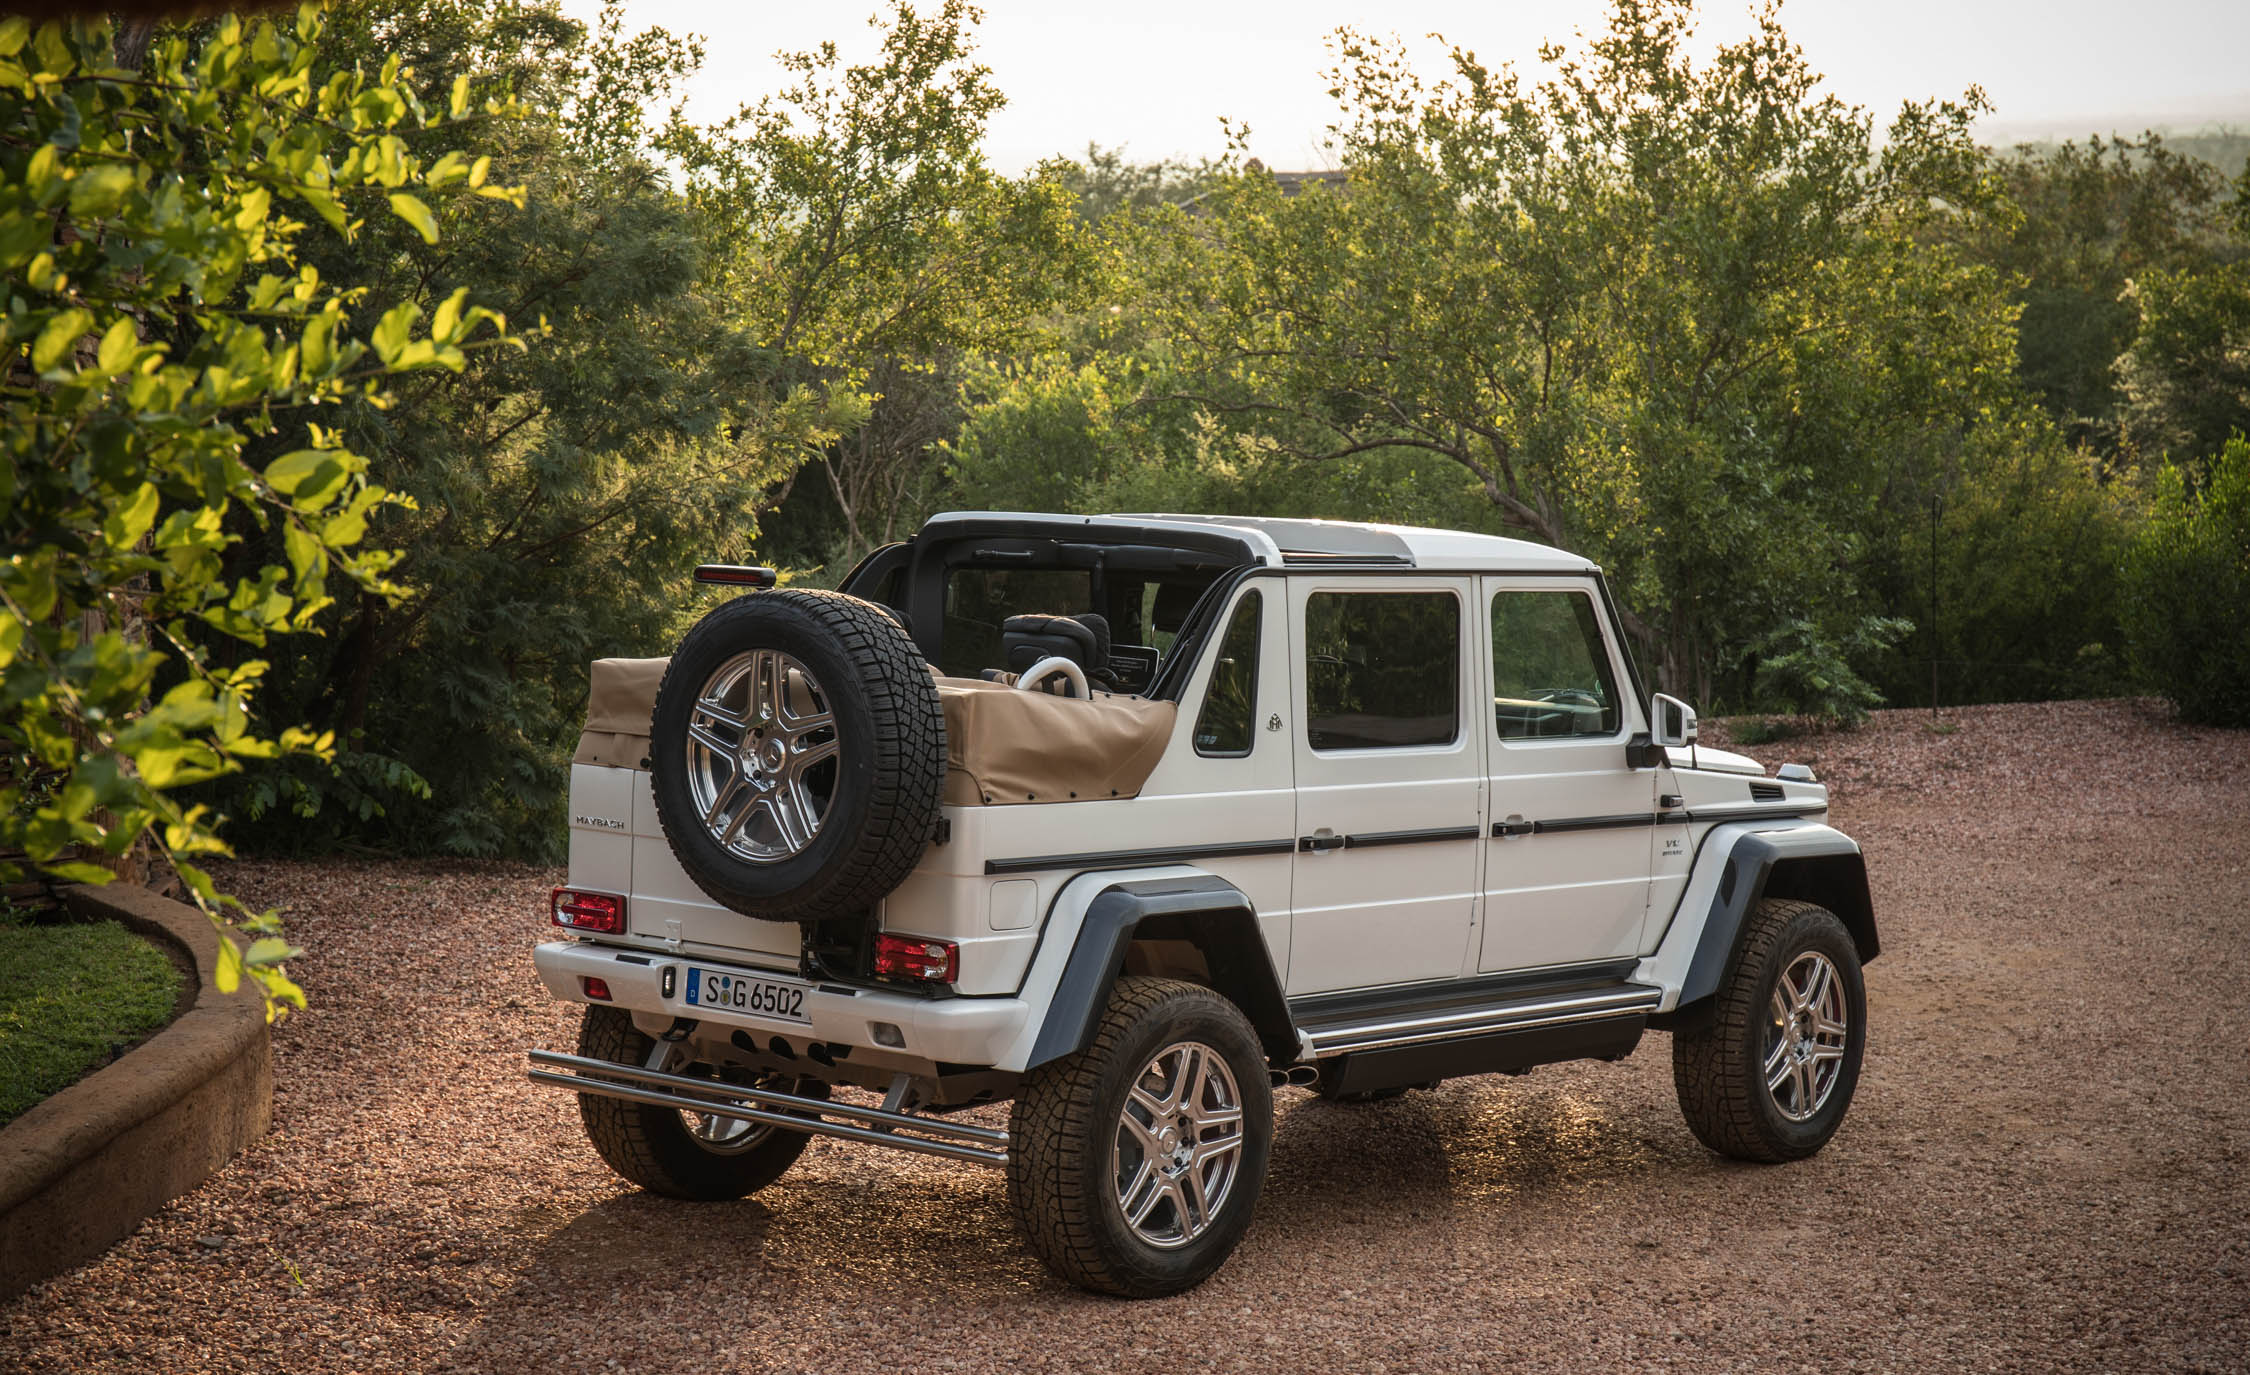 2018 Mercedes Maybach G650 Landaulet White Exterior Rear And Side Roof Open (Photo 49 of 52)